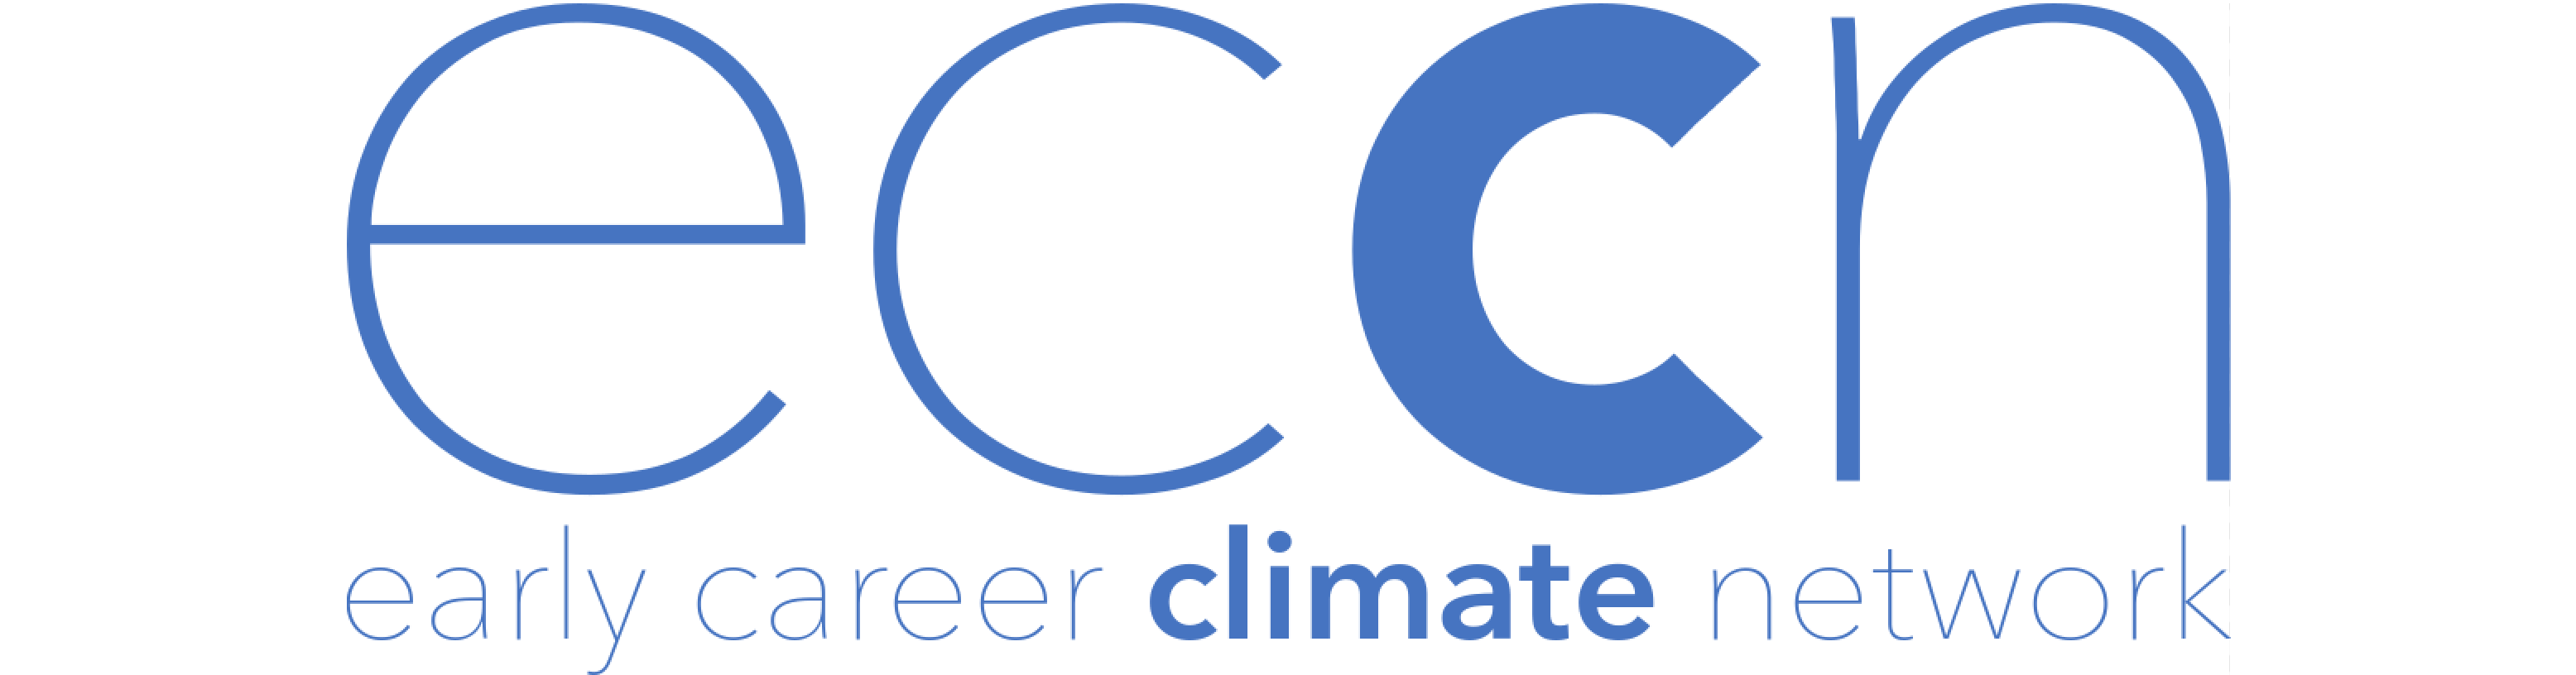 Early Career Climate Network